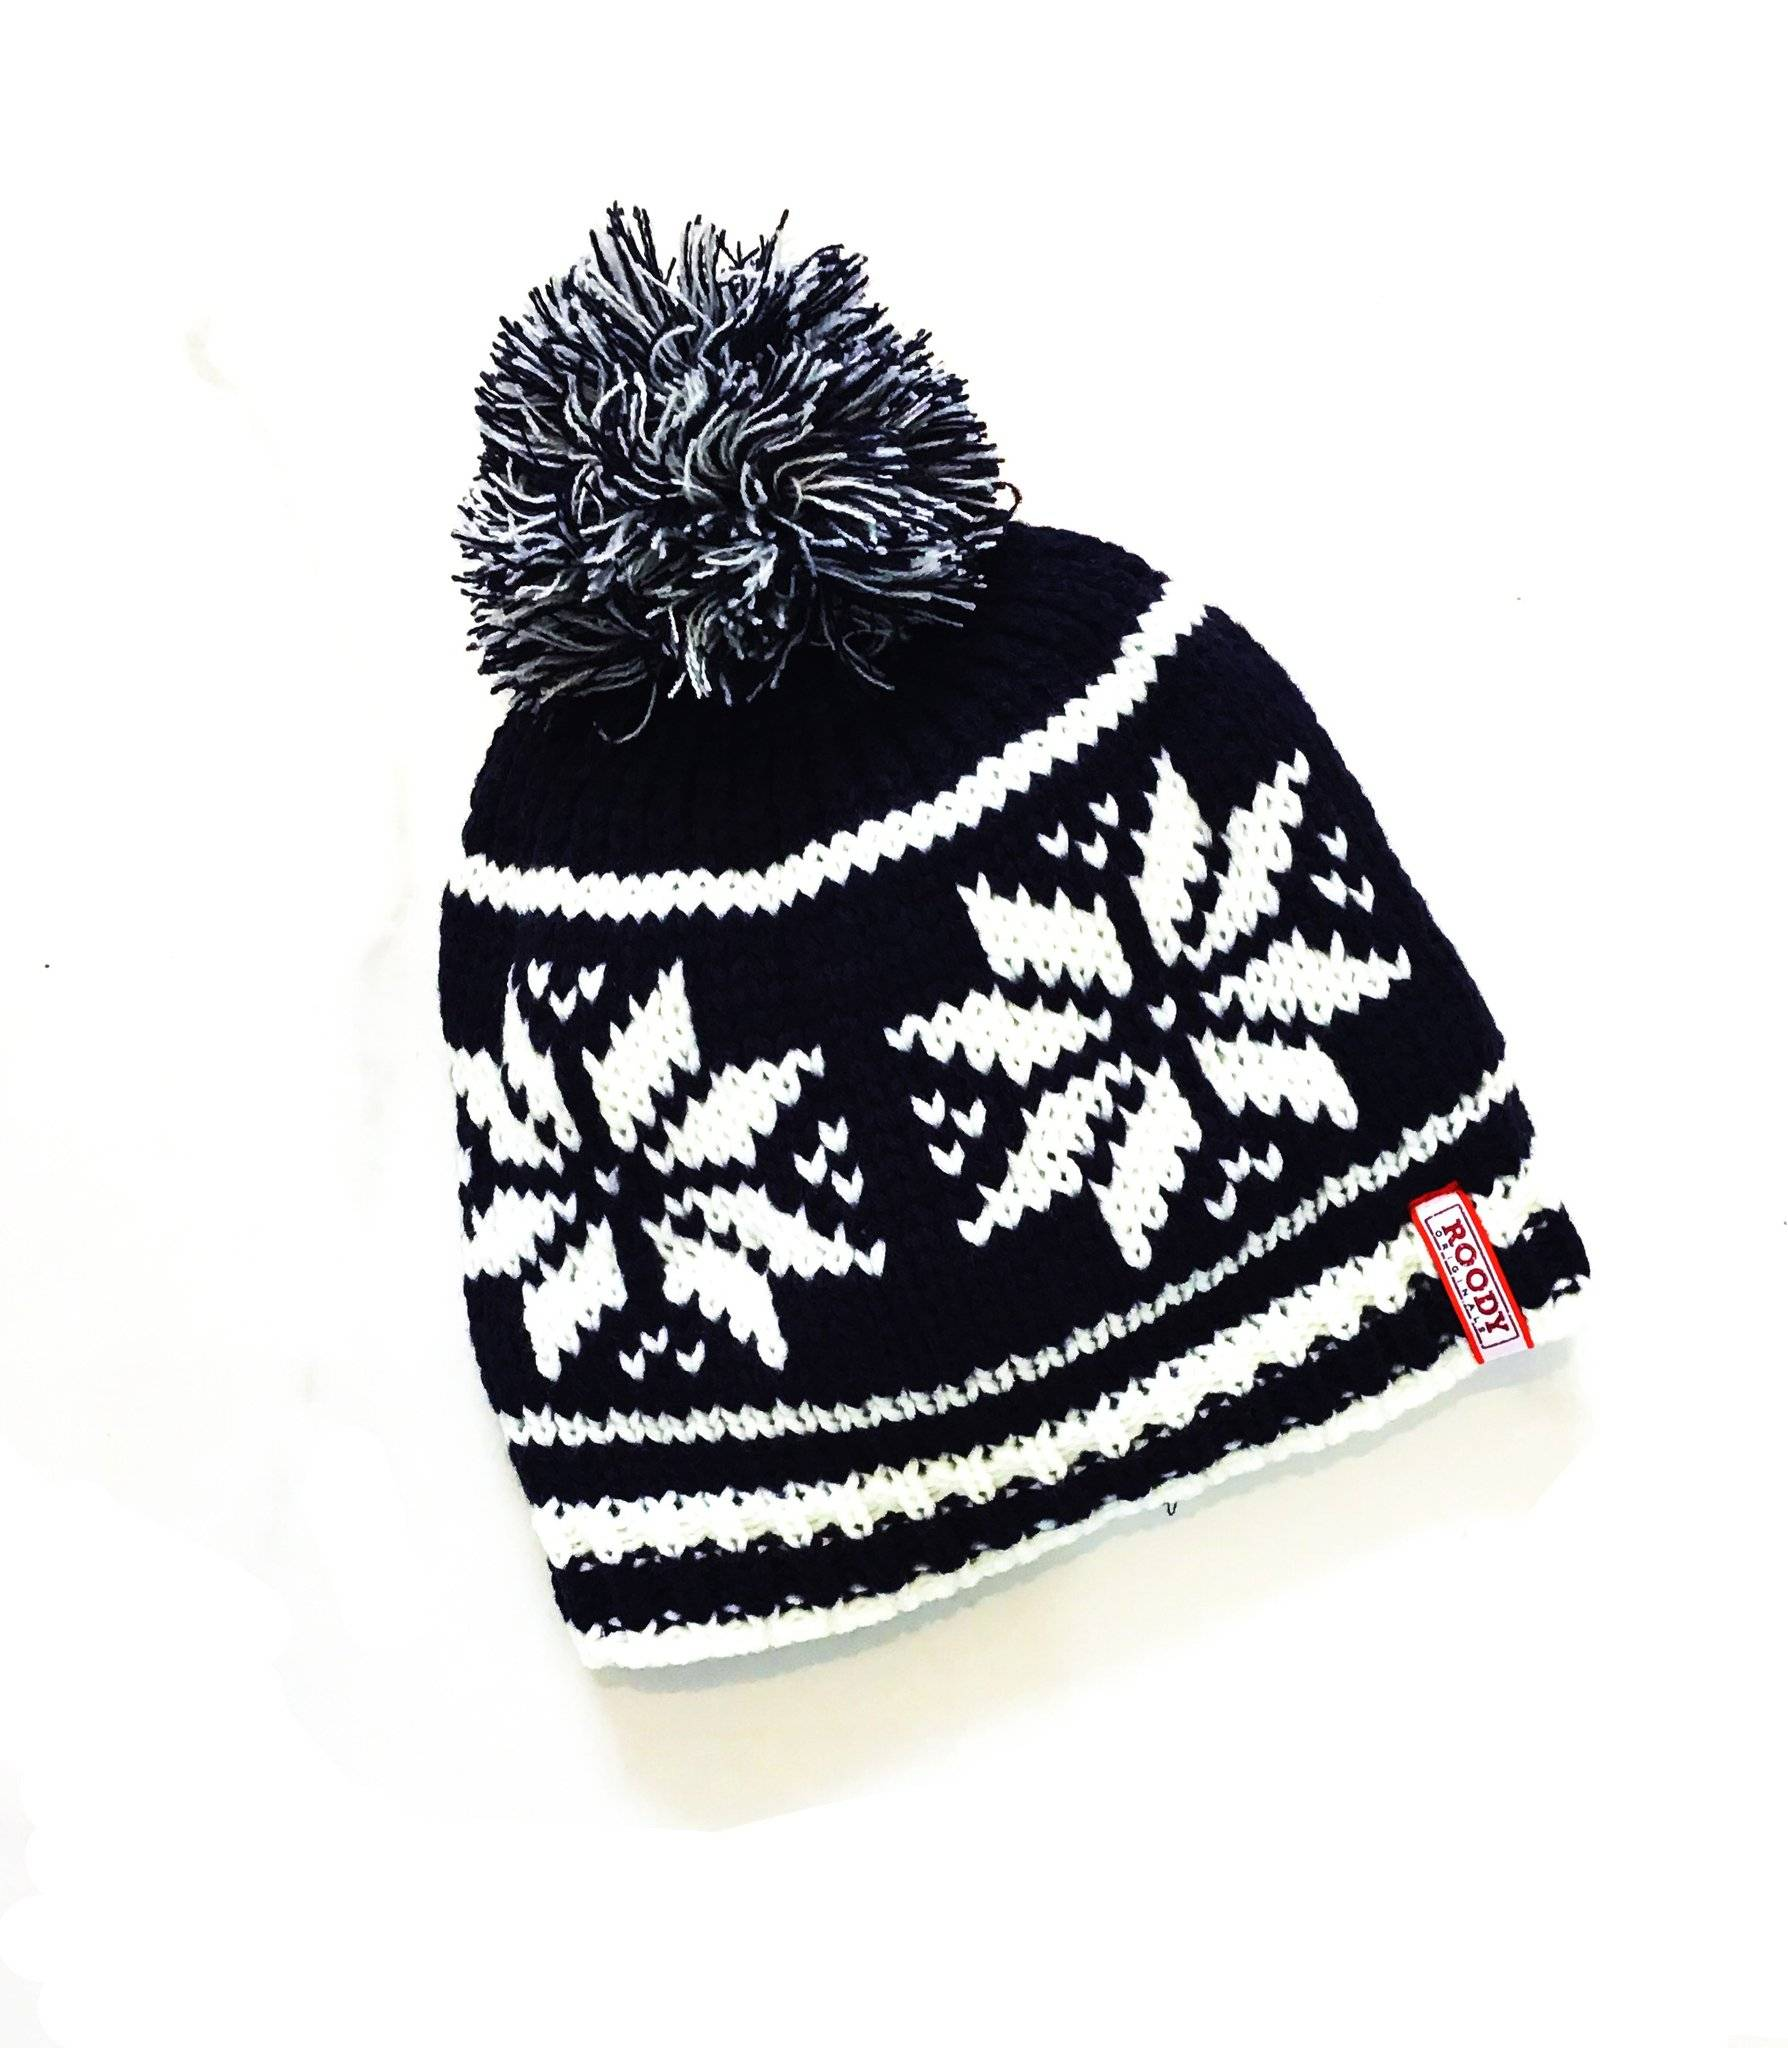 6c08f055a742e Beanies Planting Trees 2 - Roody Originals